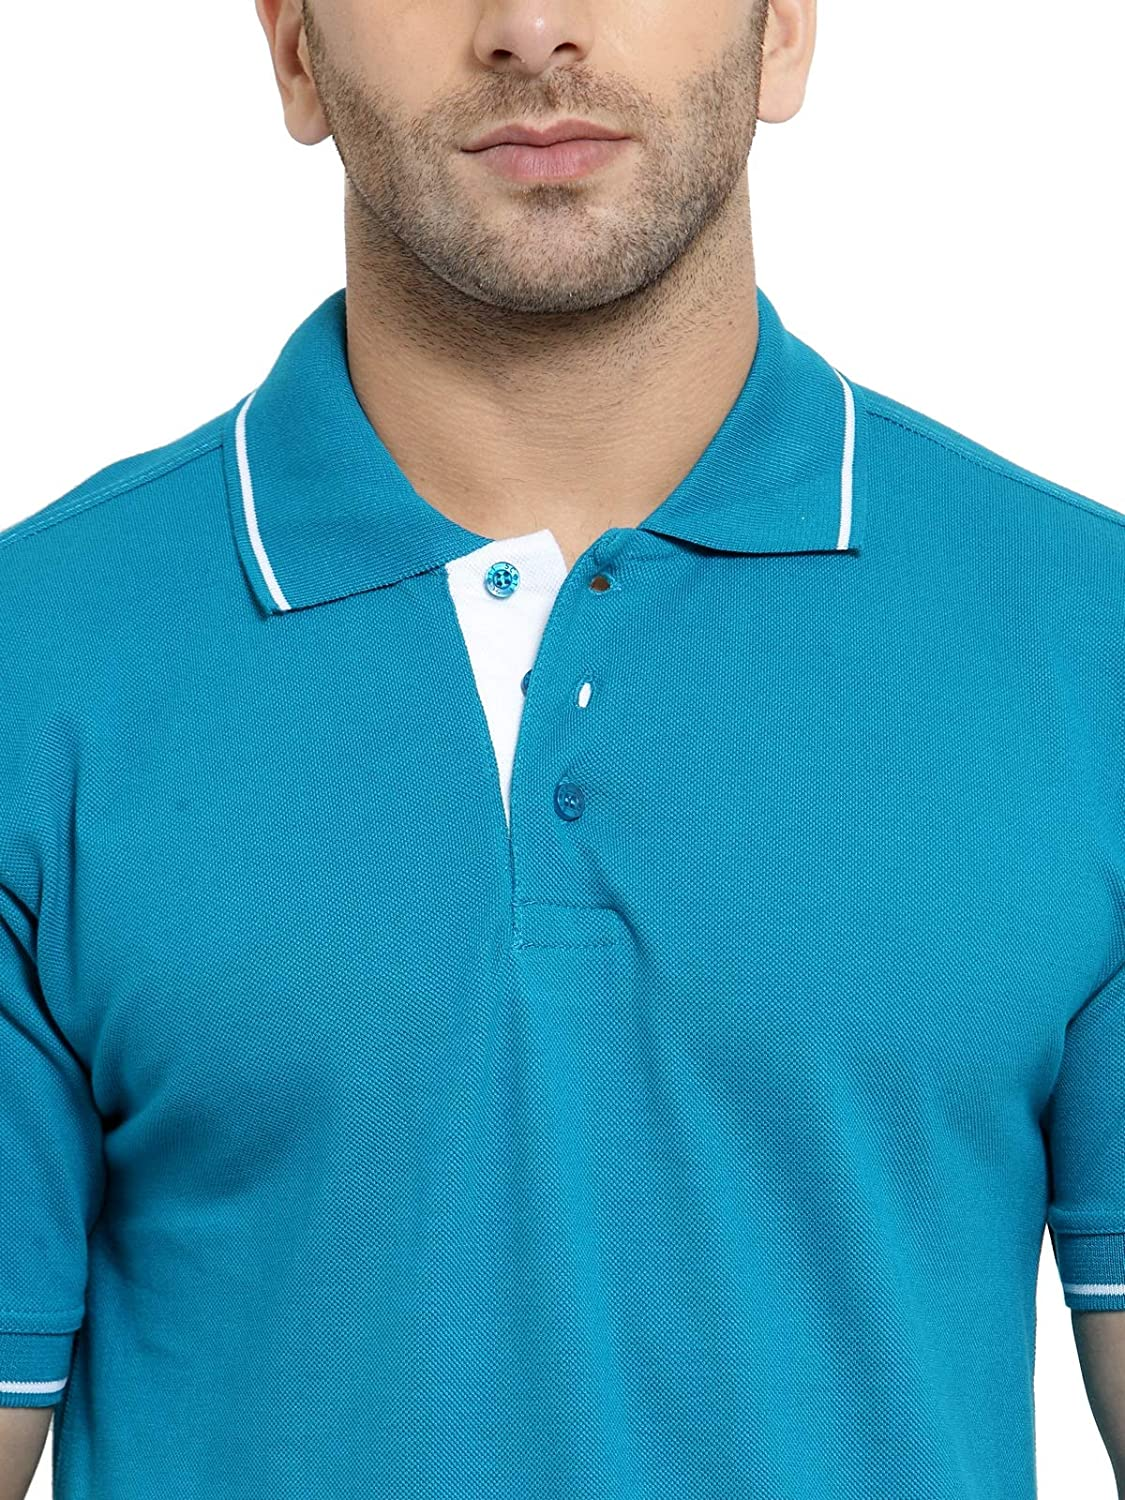 Men's Cotton Turquoise Green With White Tipping Polo T-Shirt (M-40)